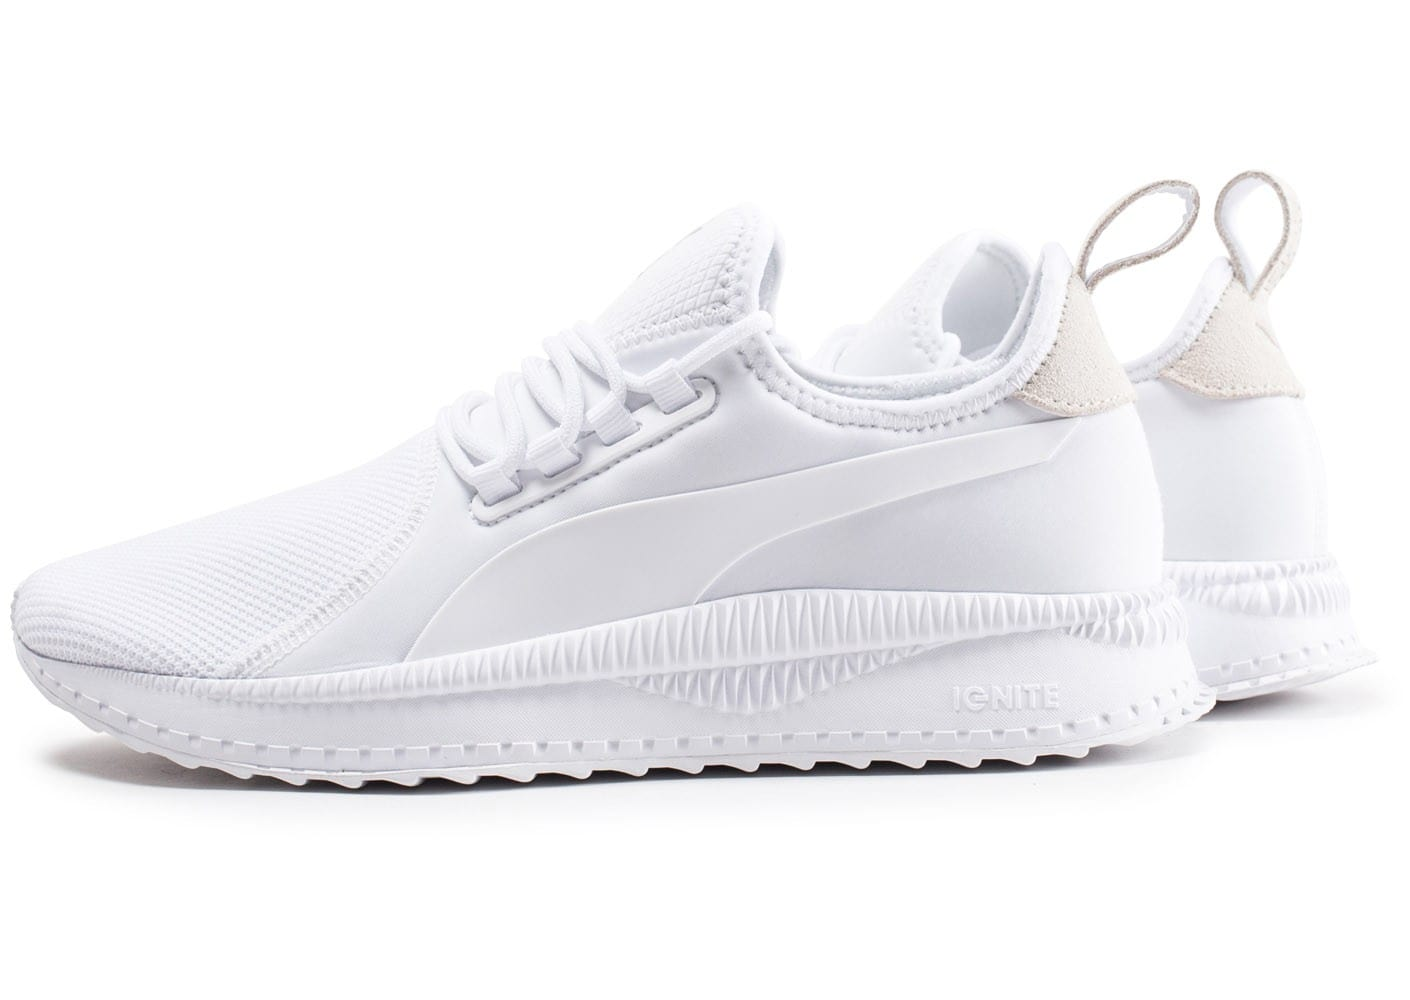 Chaussures Puma Tsugi Apex blanches Casual unisexe sC0UyhKMA